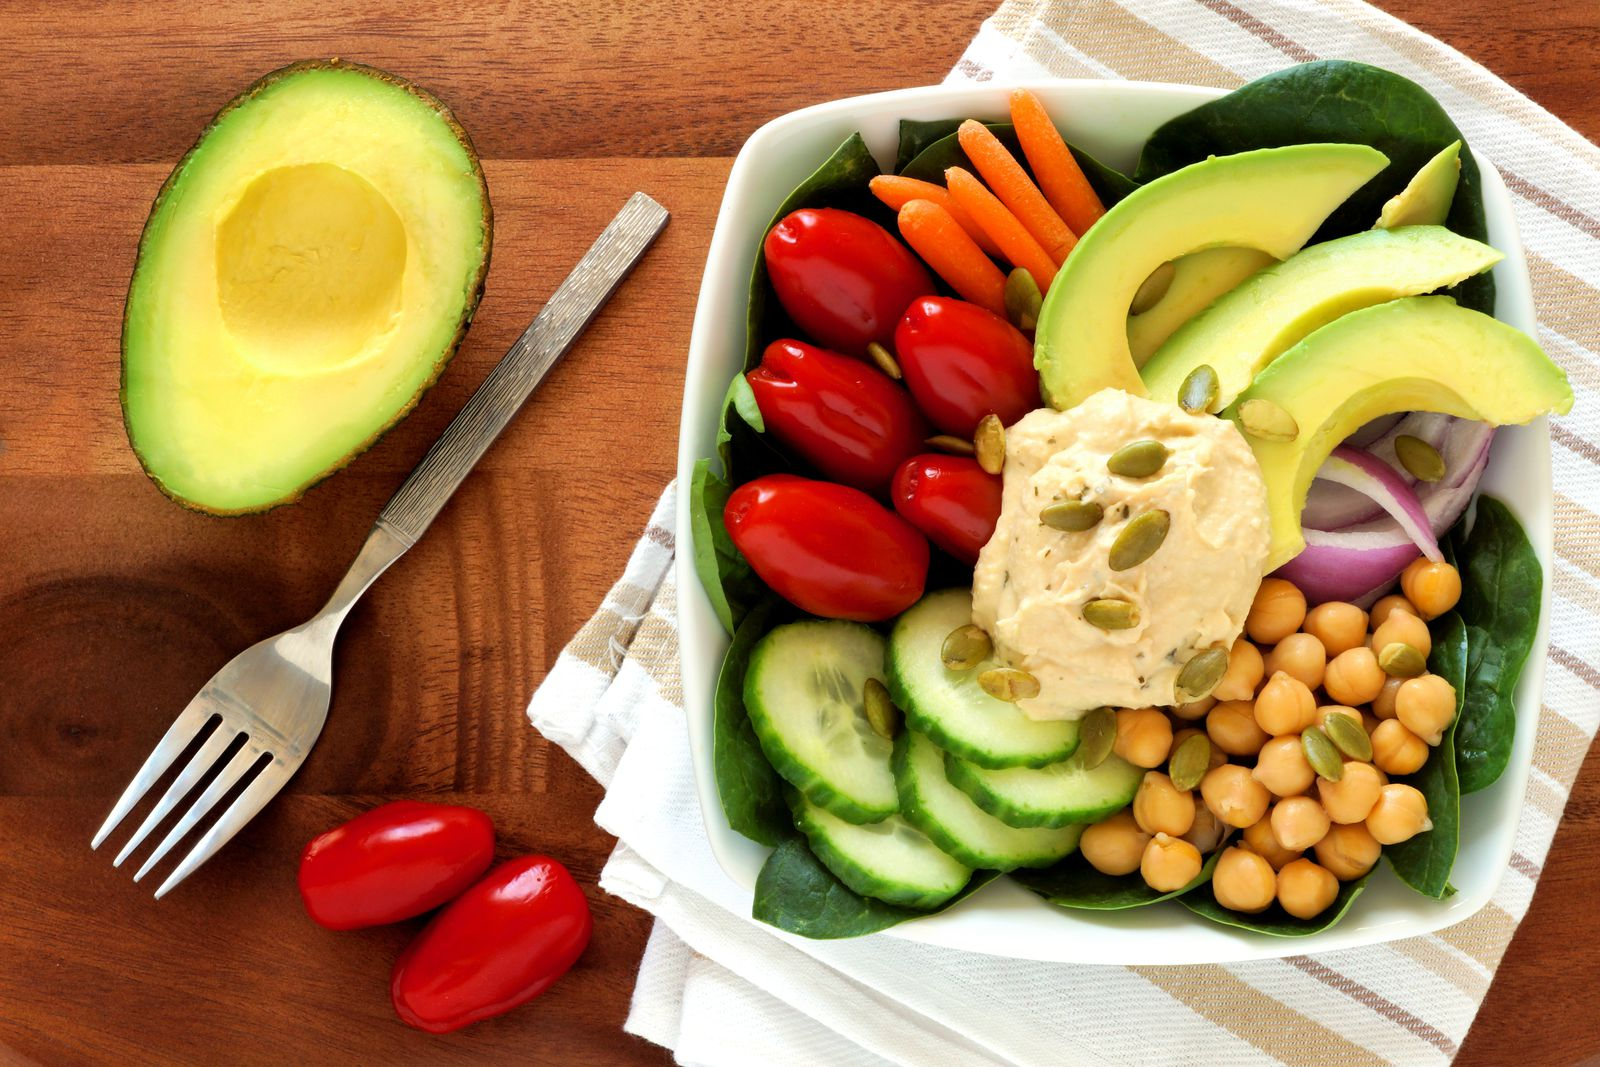 Want to Lose Weight? Eat More Fat!